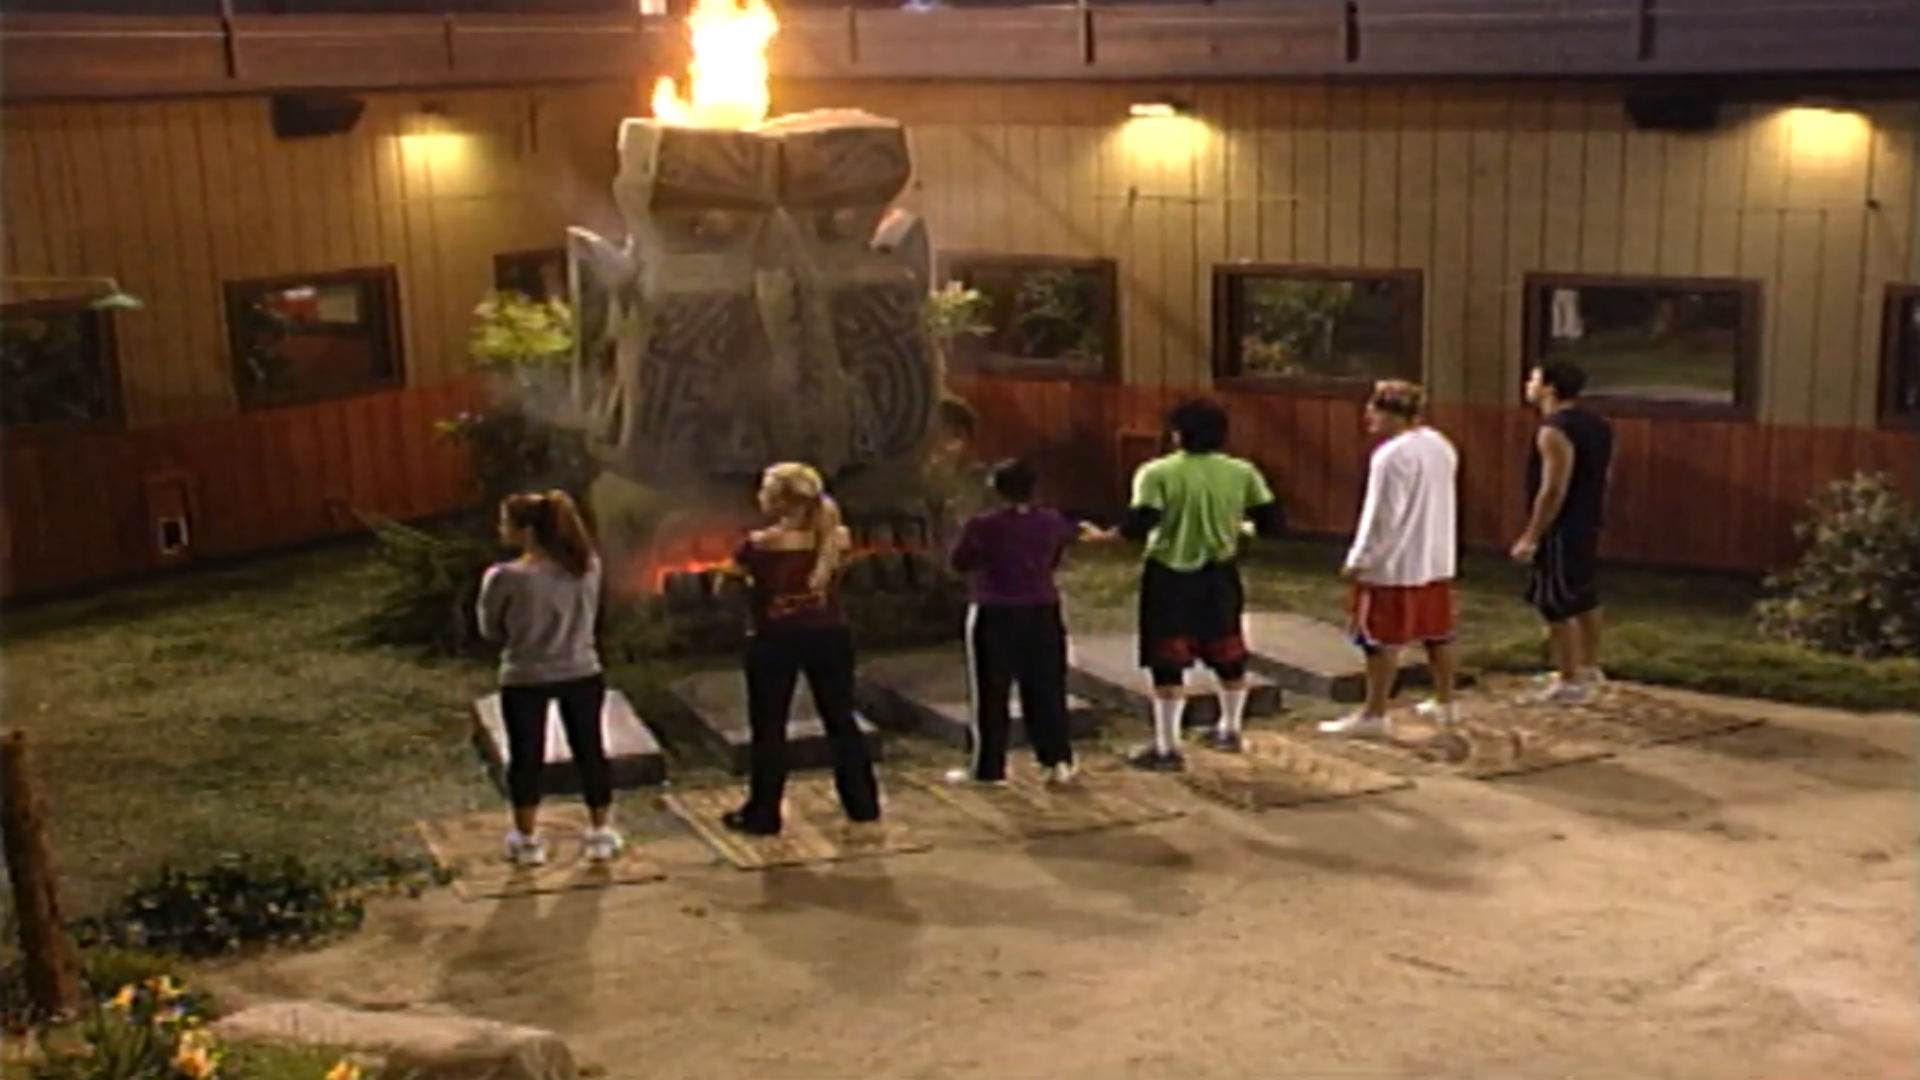 OTEV was first introduced to Big Brother fans in Season 7, Episode 20.